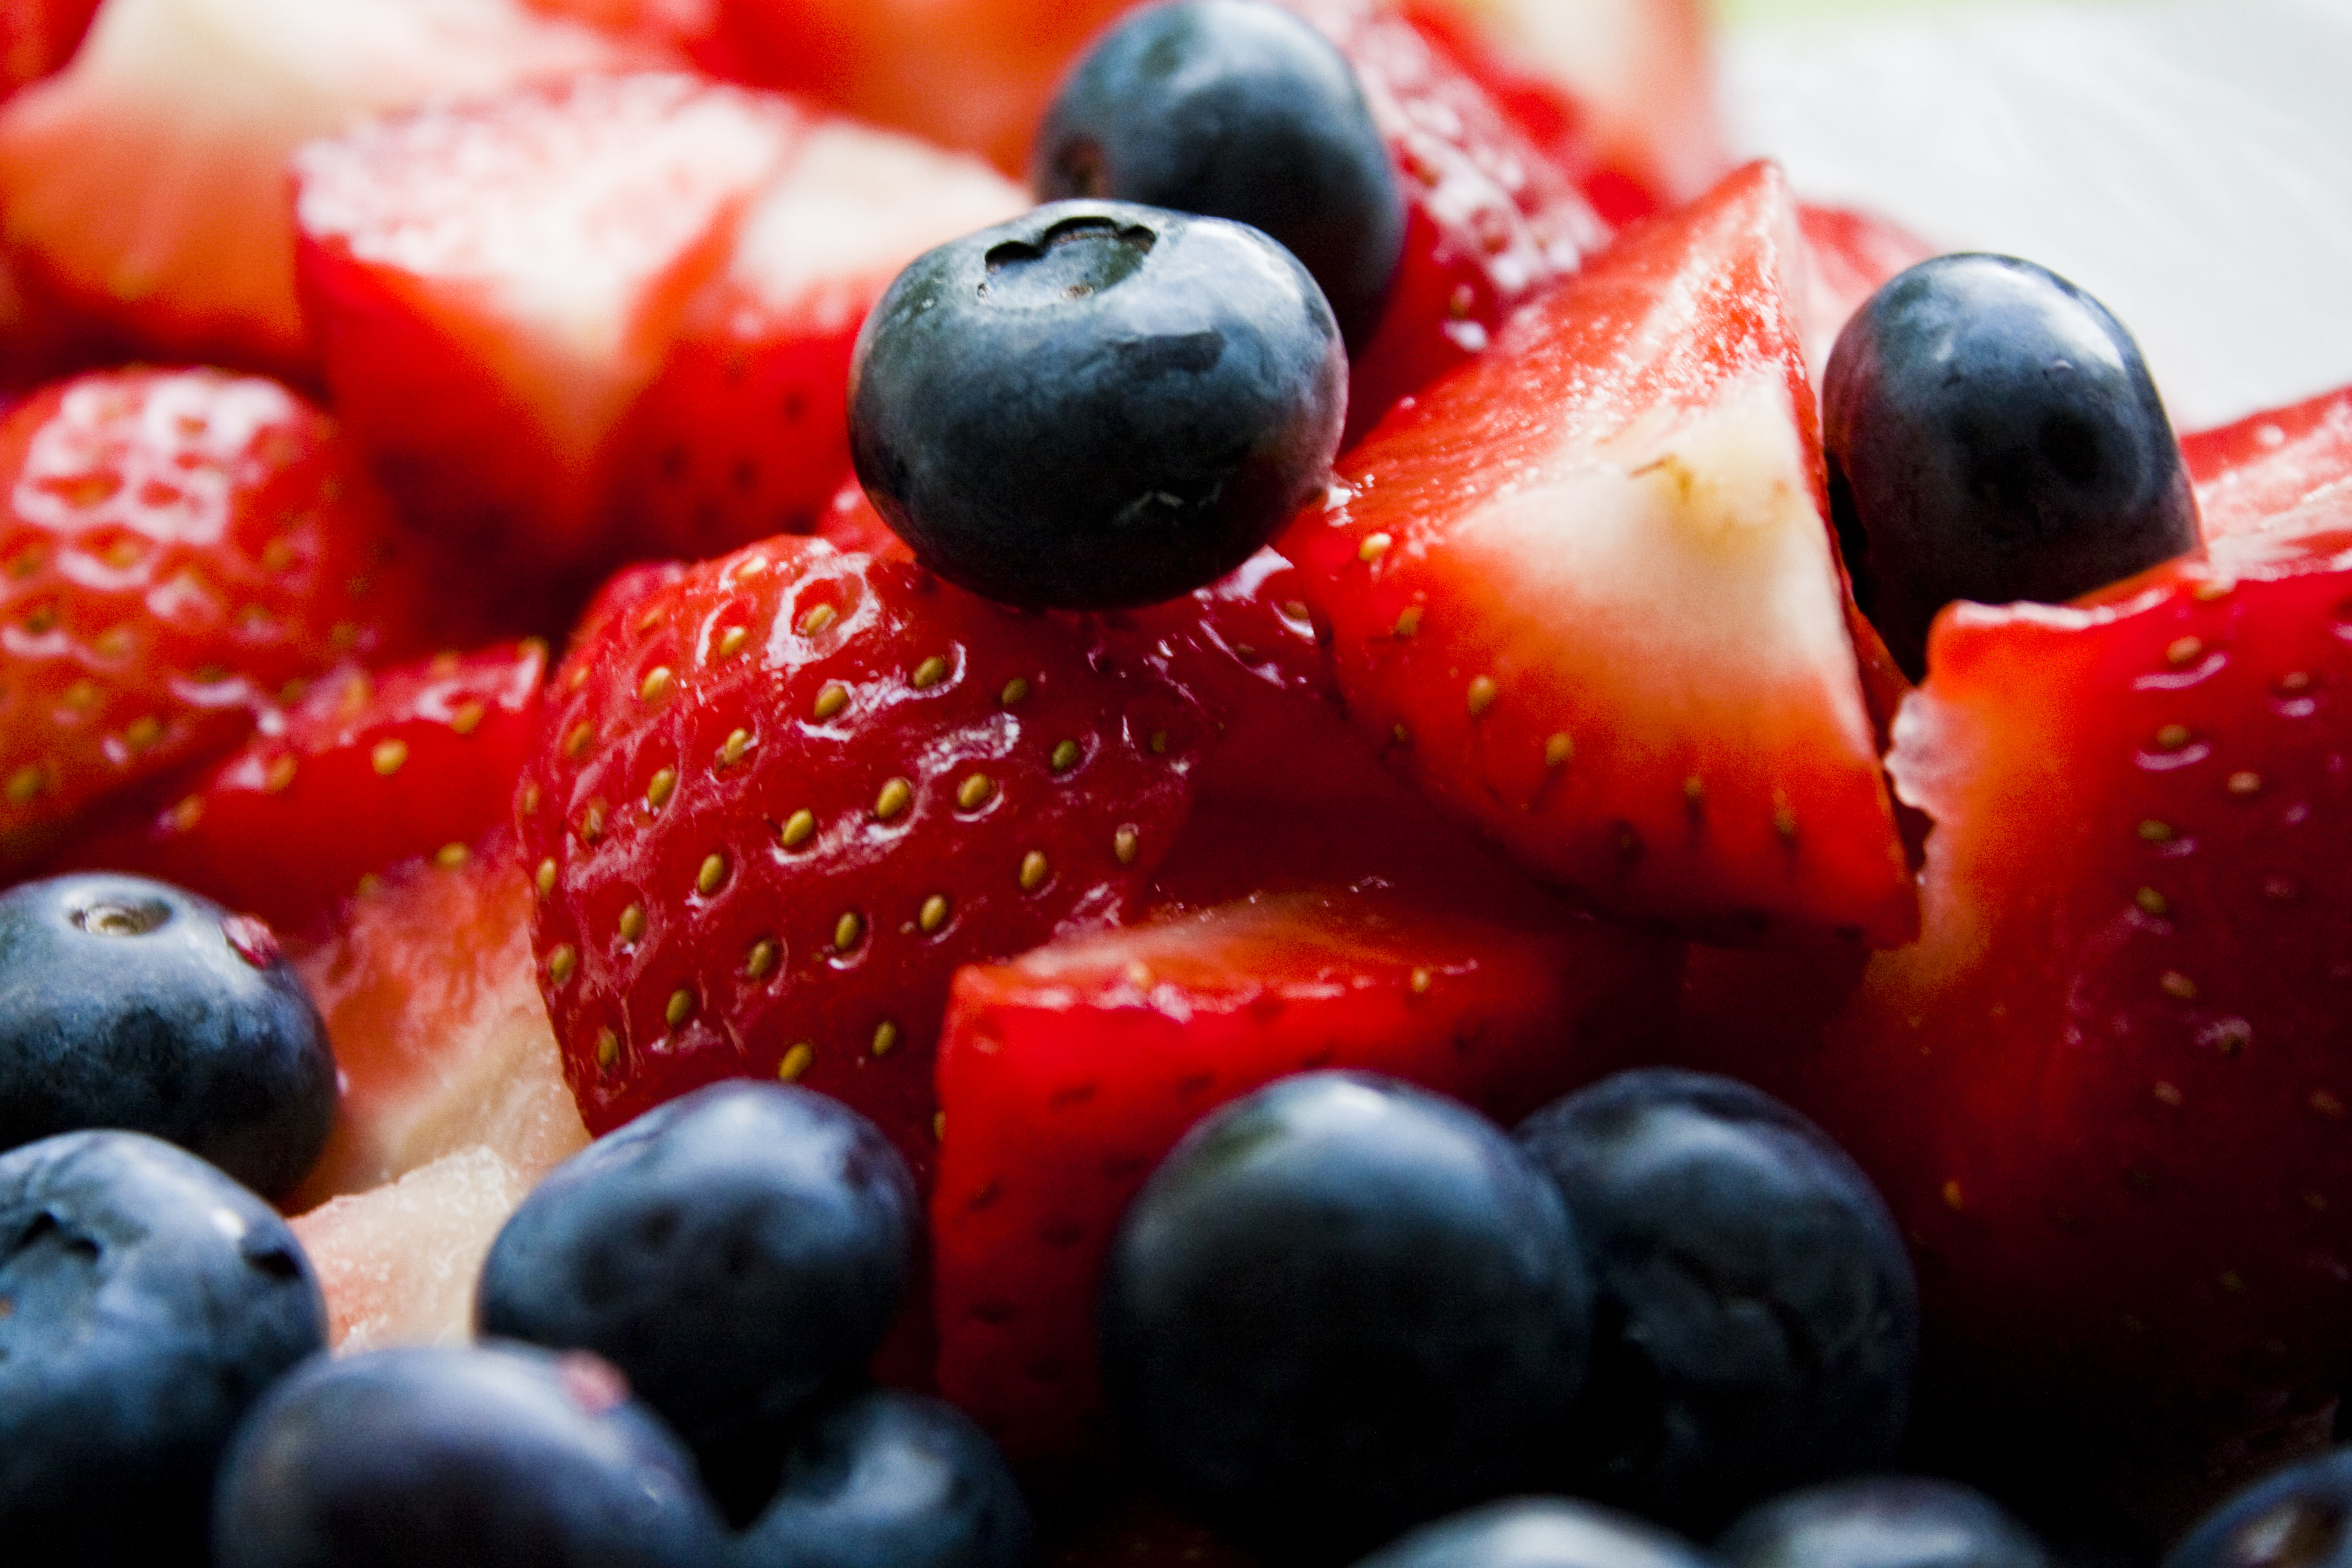 A Picture of Fruits that could be a food allergy